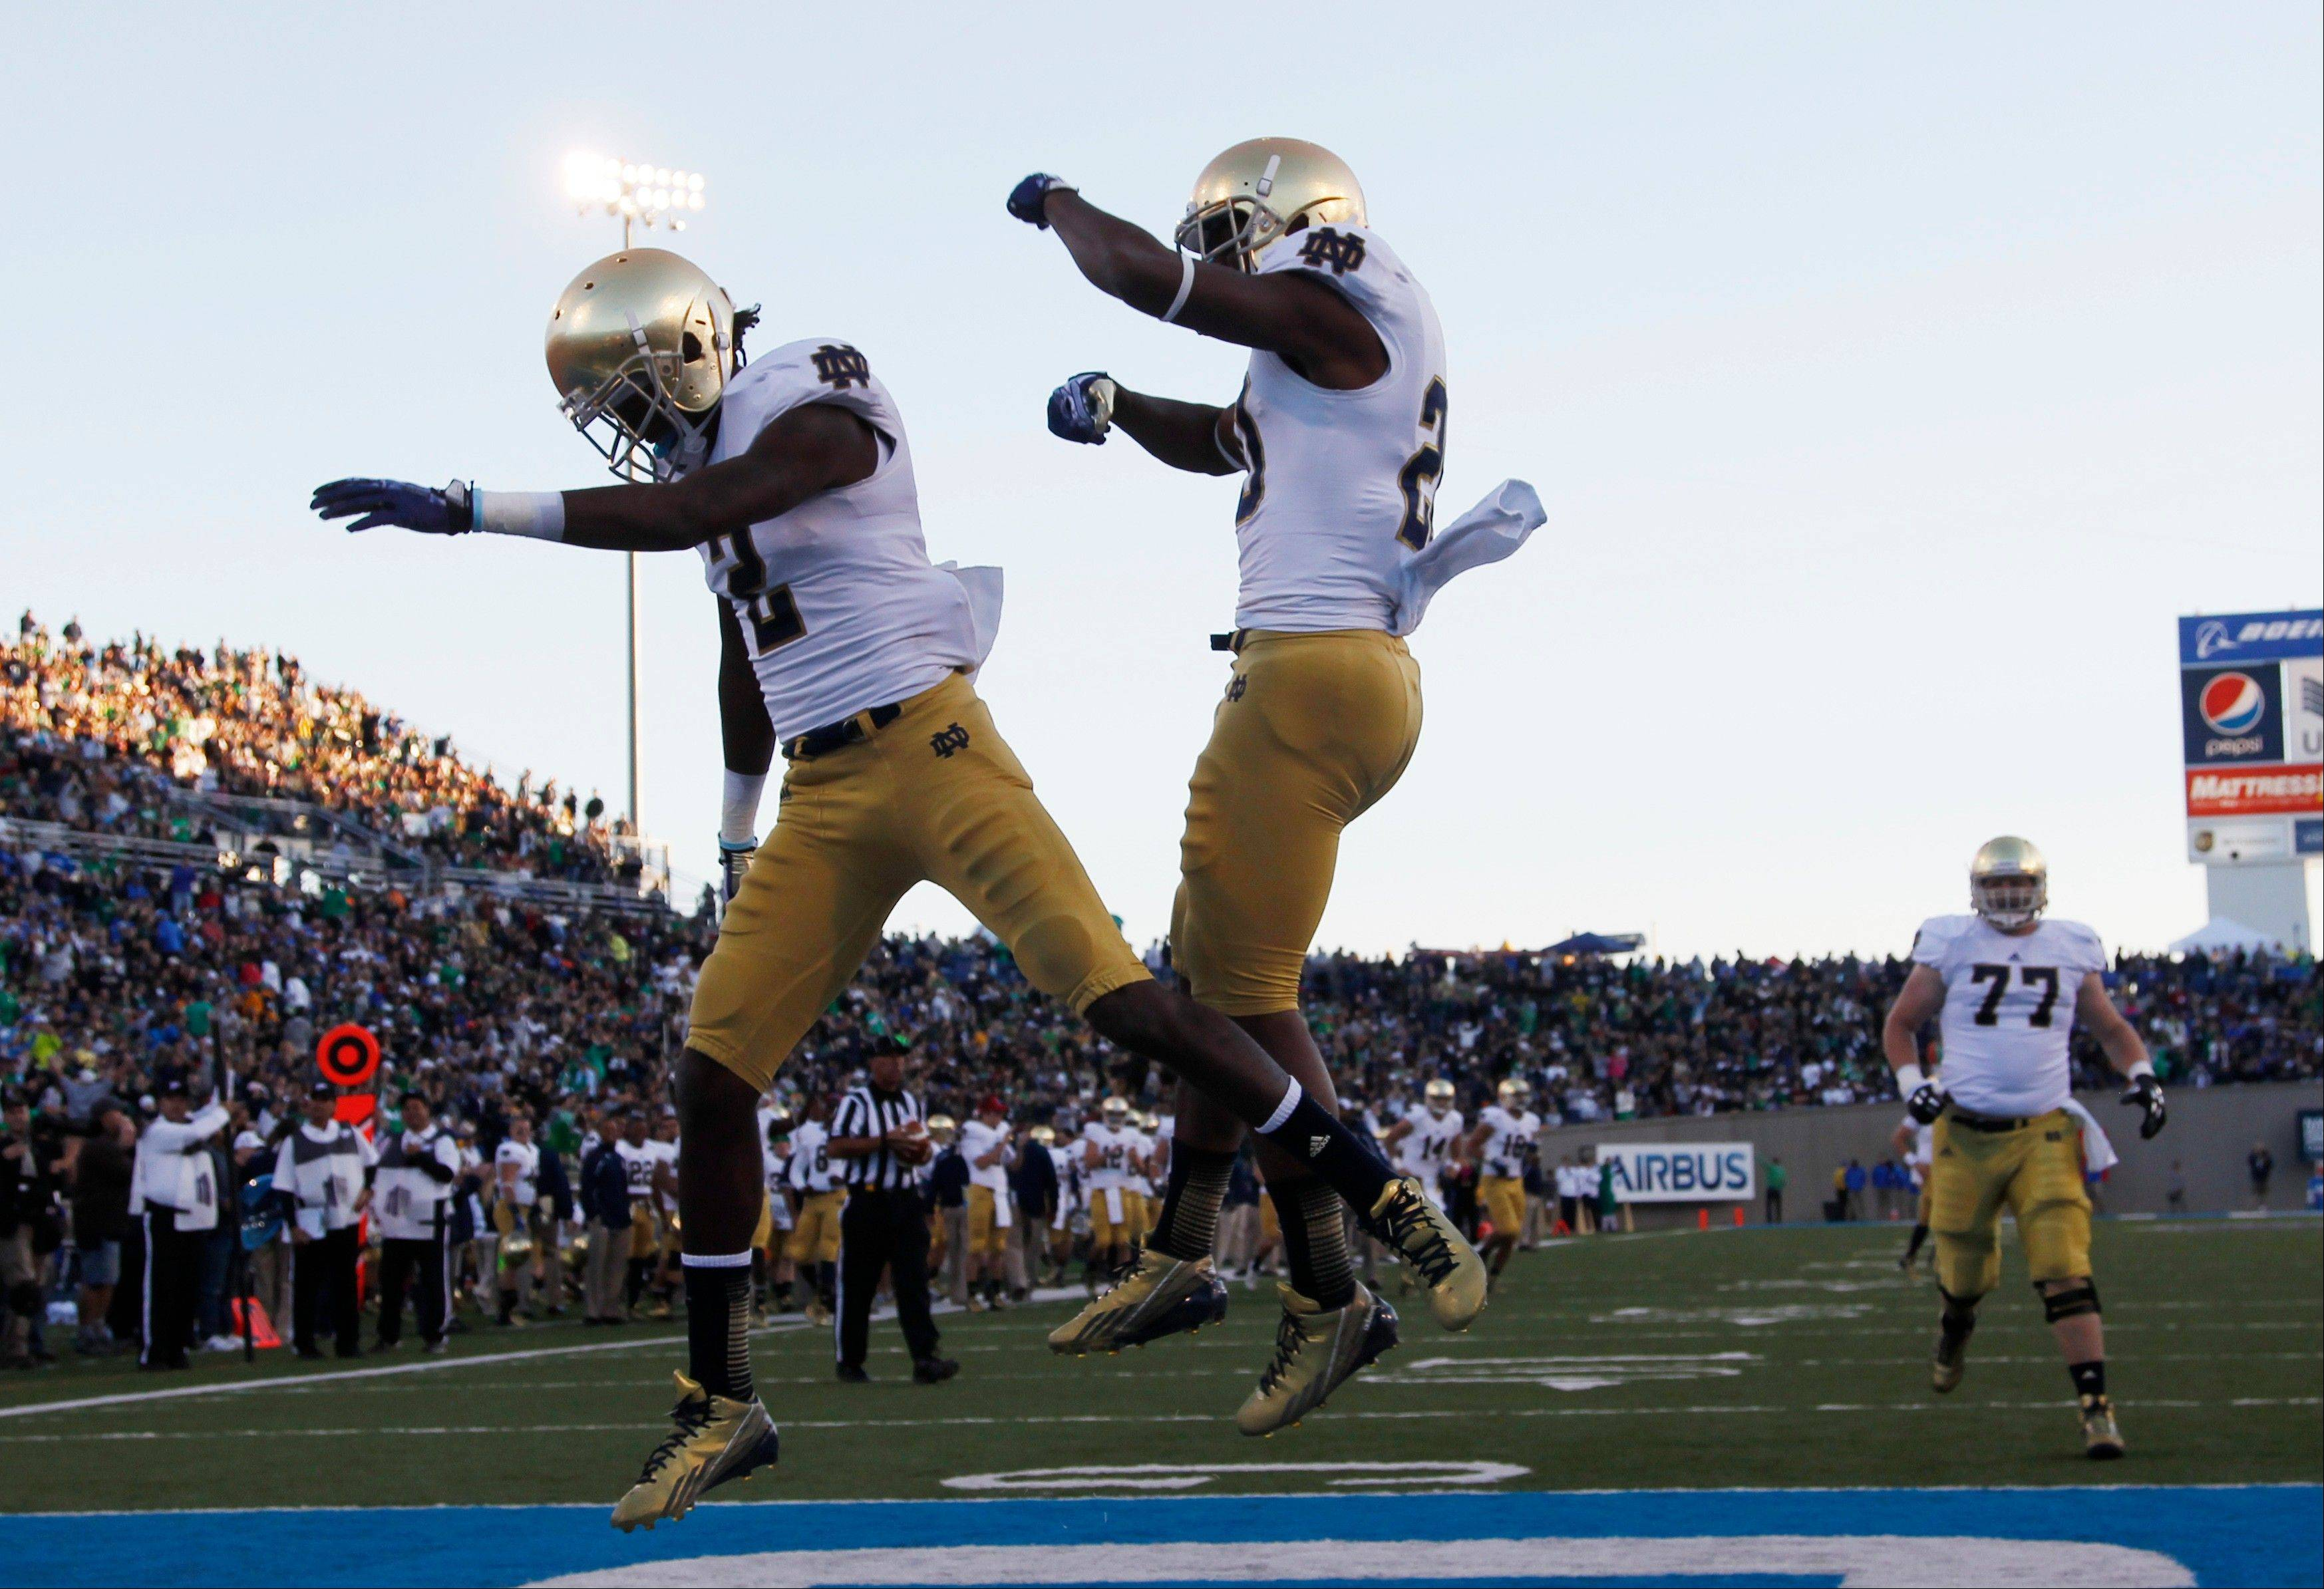 Notre Dame wide receiver Chris Brown, left, celebrates his touchdown catch with teammate C.J. Prosise against Air Force in the third quarter.